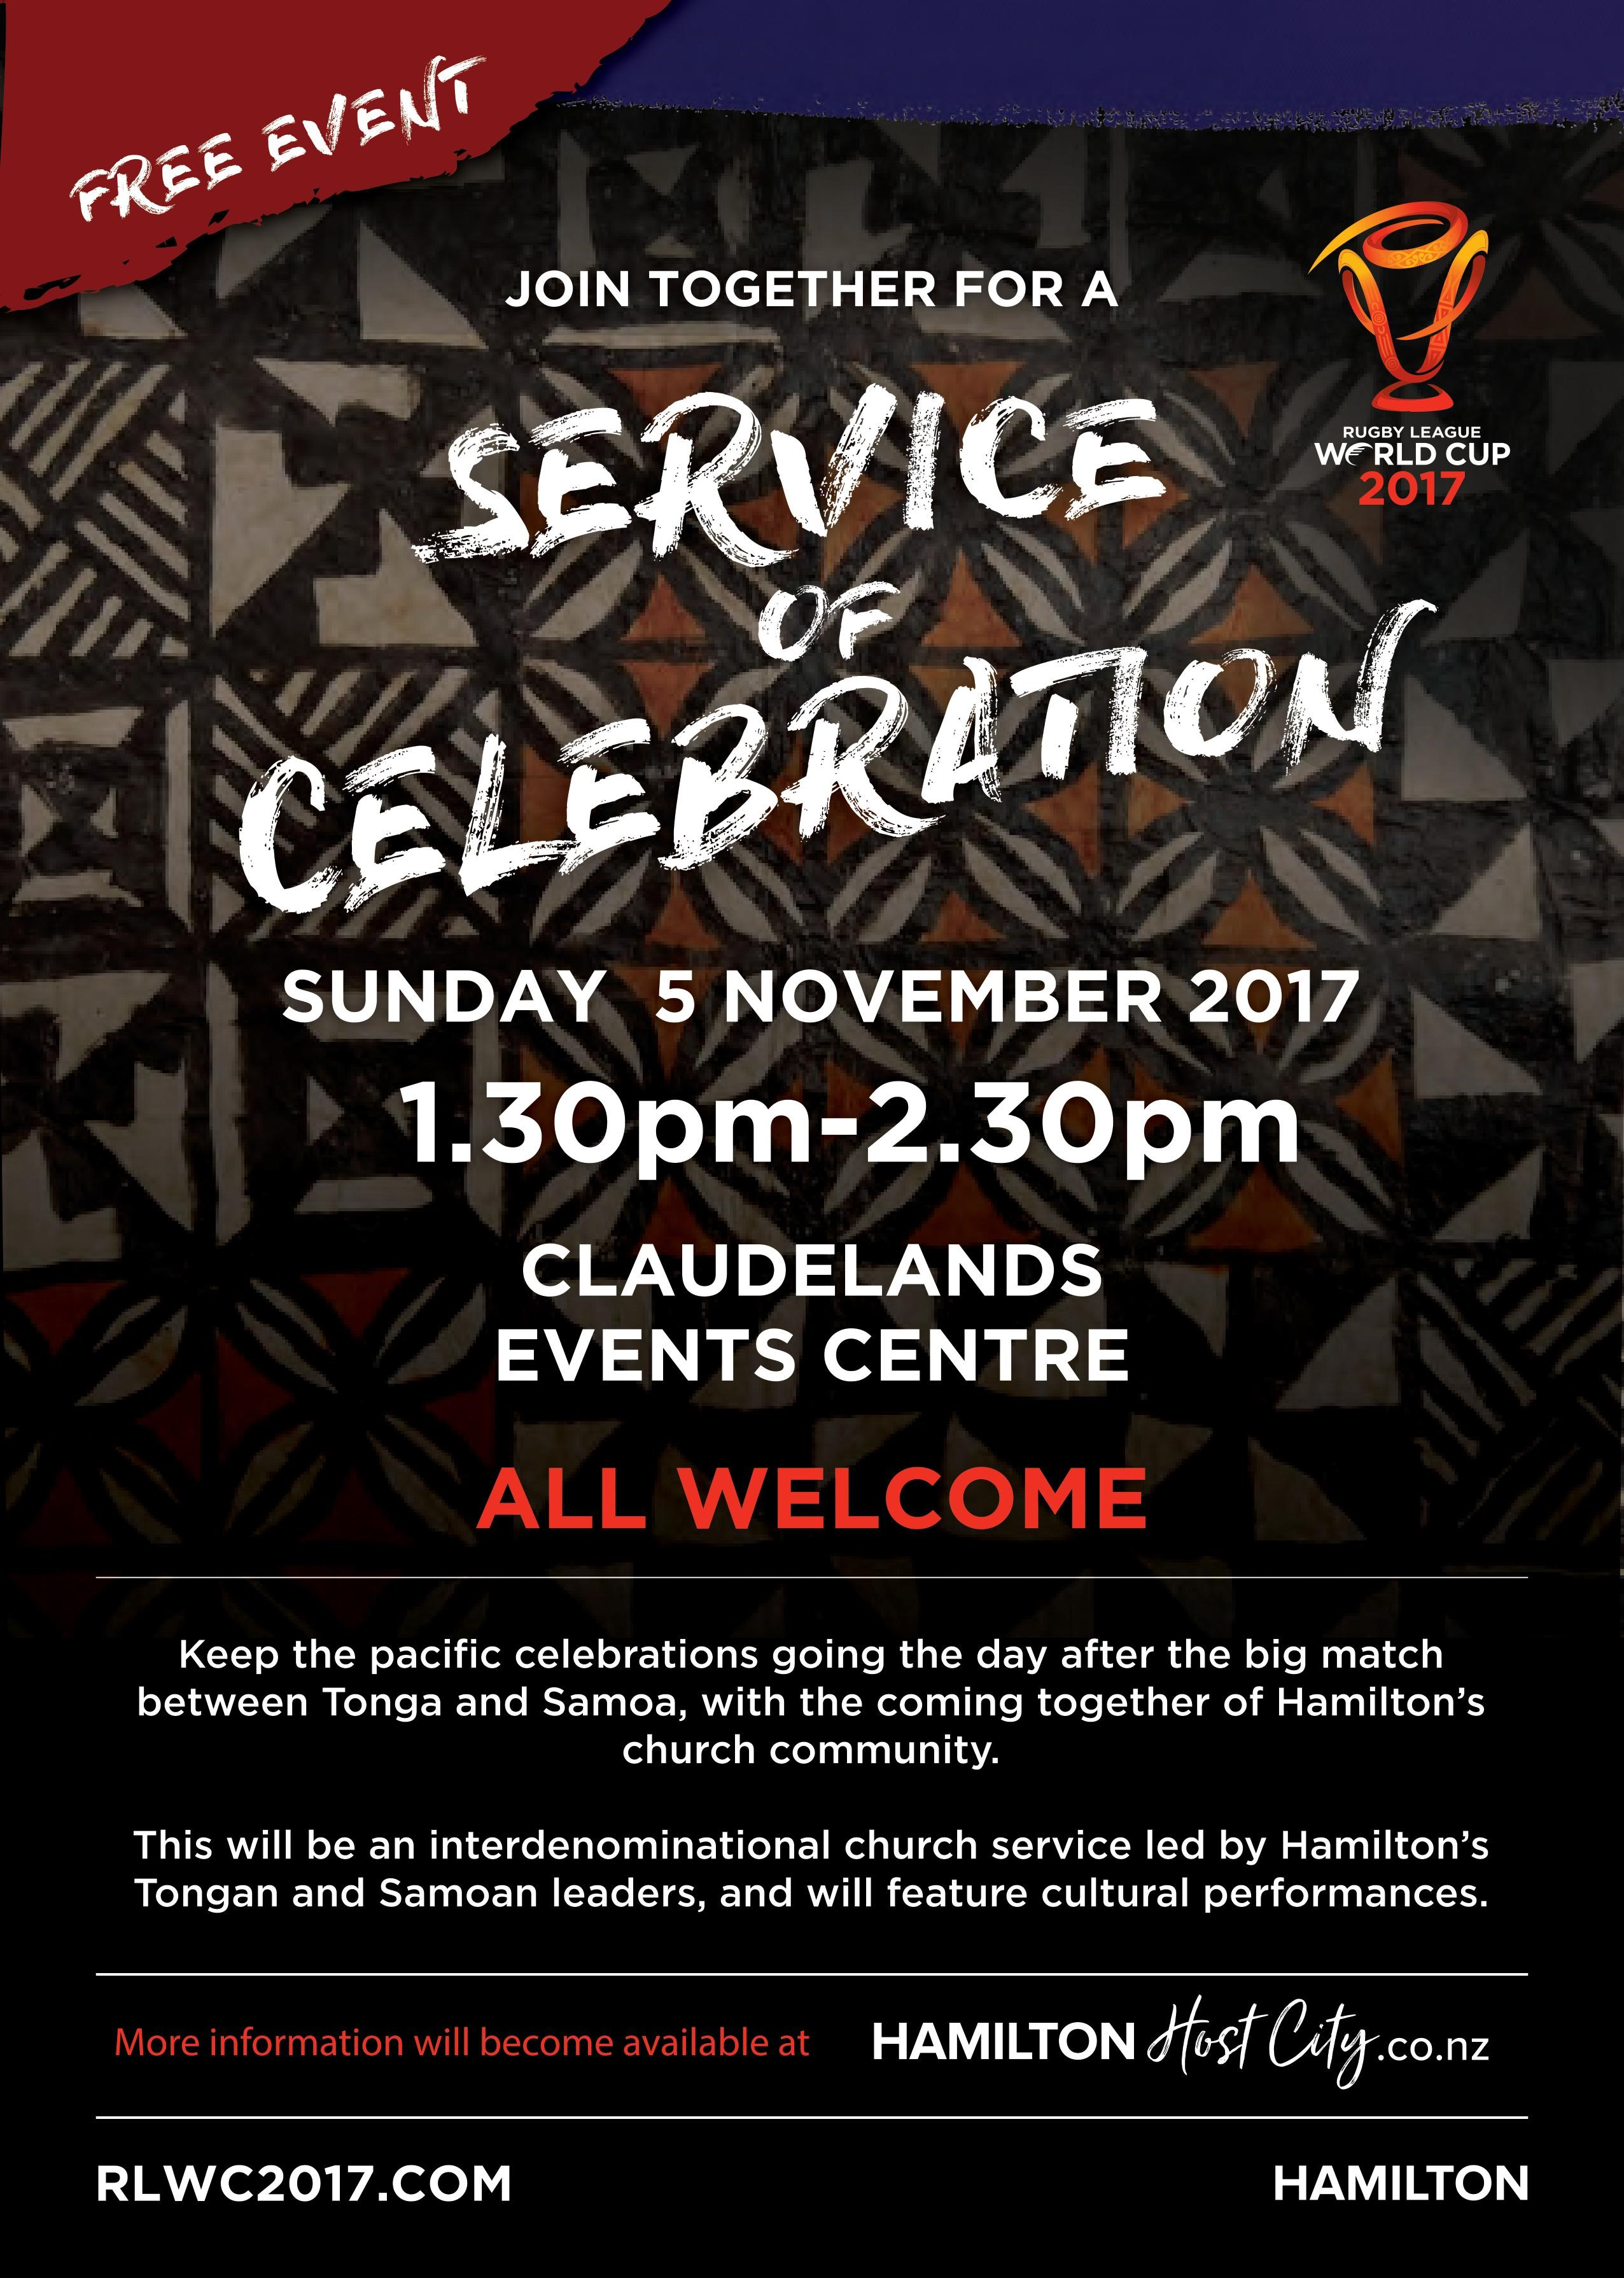 Rugby League World Cup Service of Celebration, Hamilton